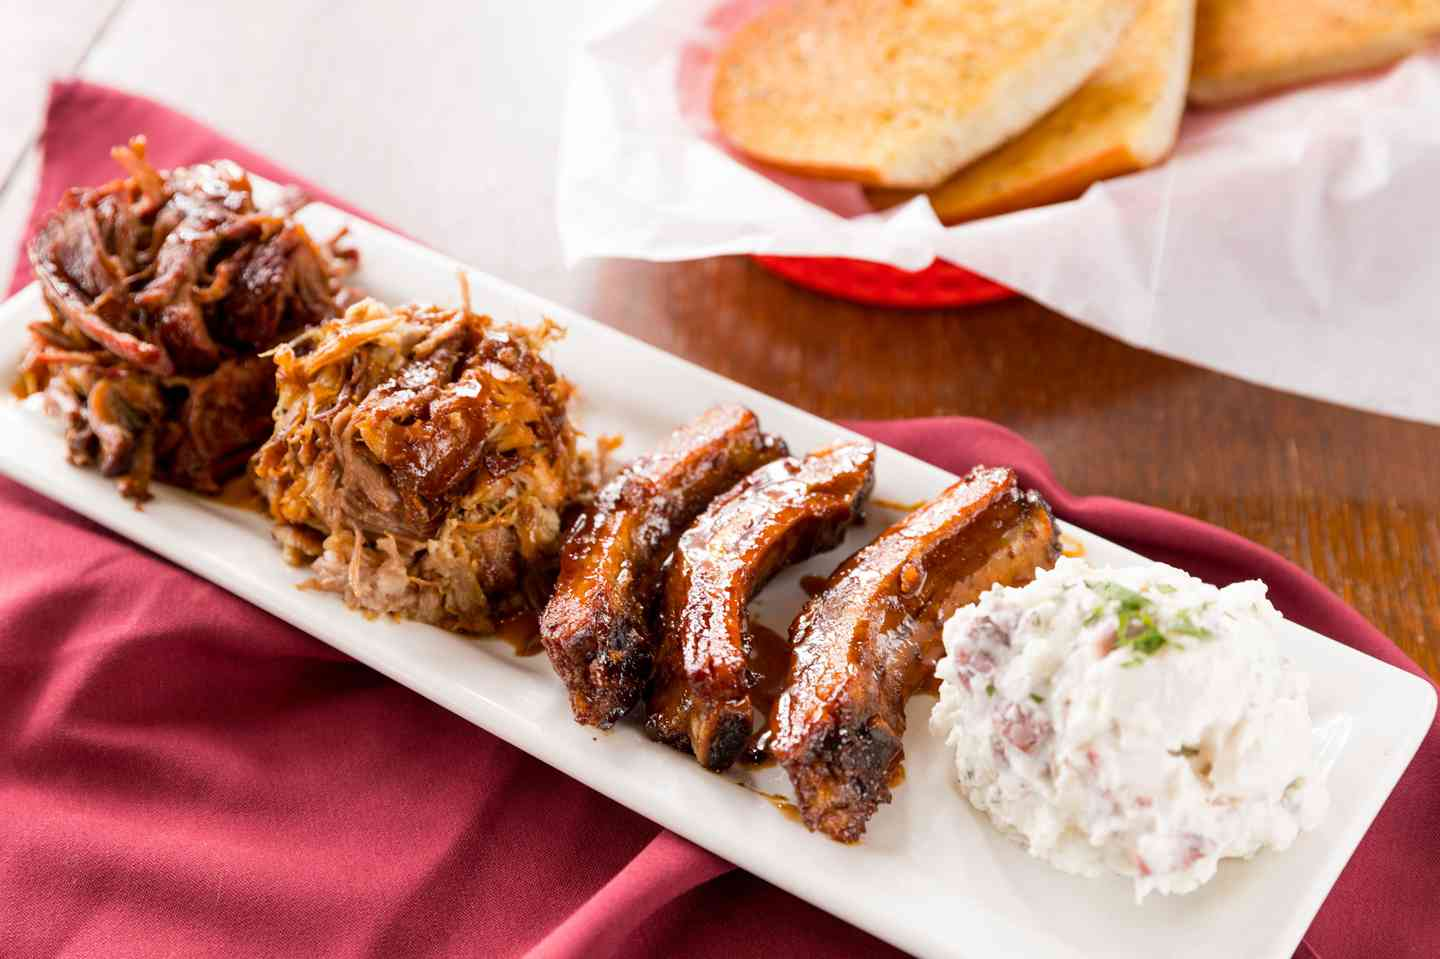 BBQ Meal for Two $25